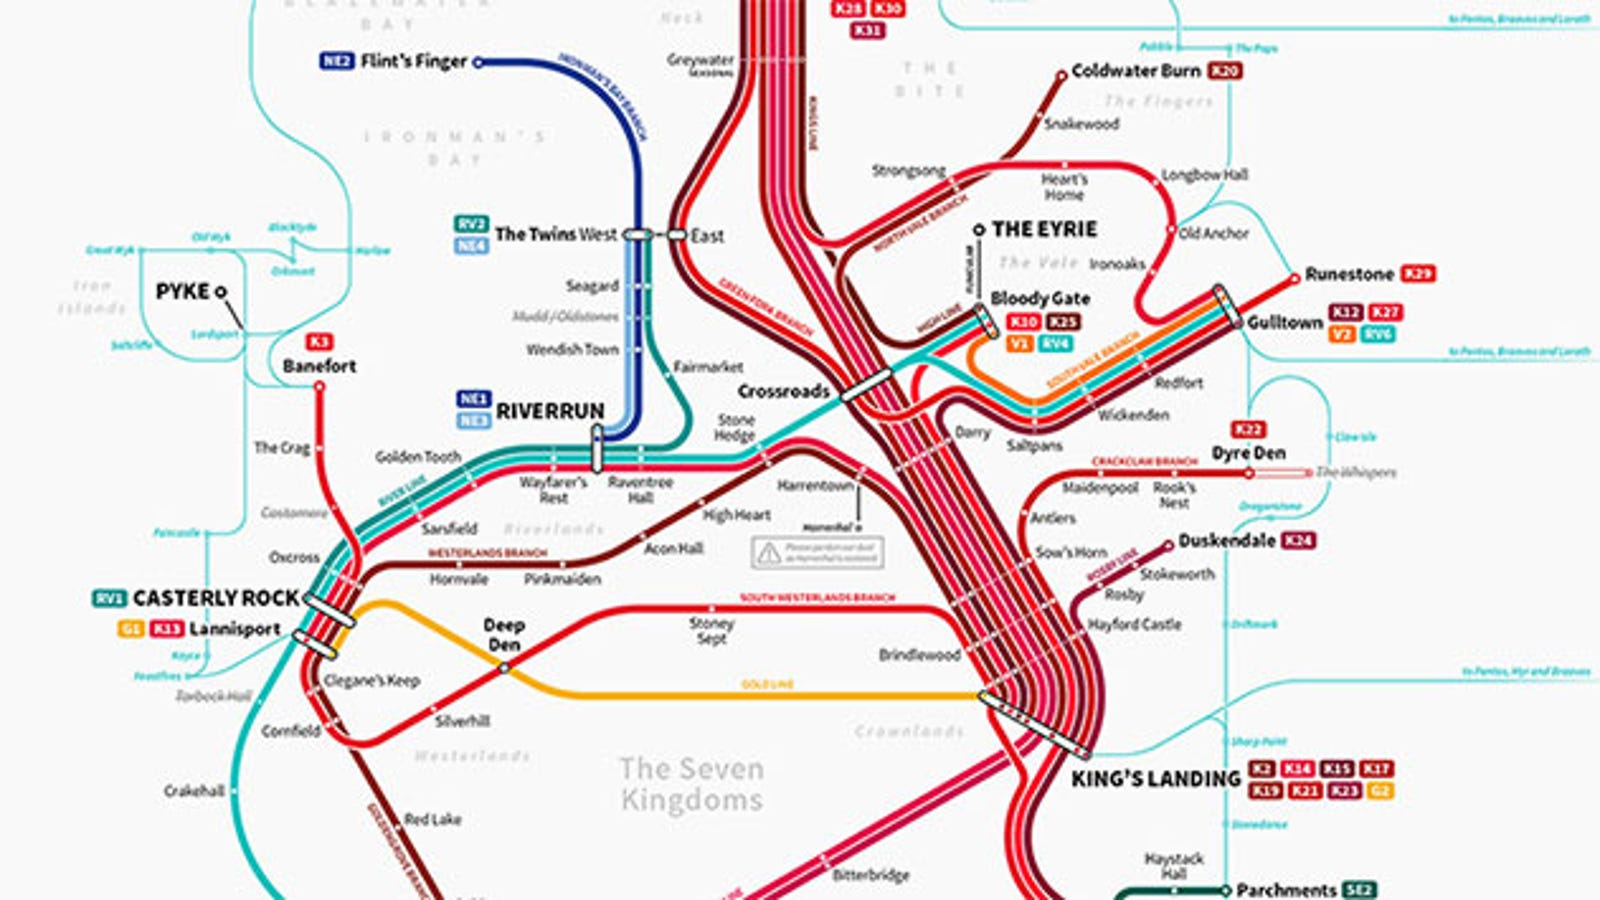 Game Of Thrones Subway Map Is A Handy Guide To Westeros Travel